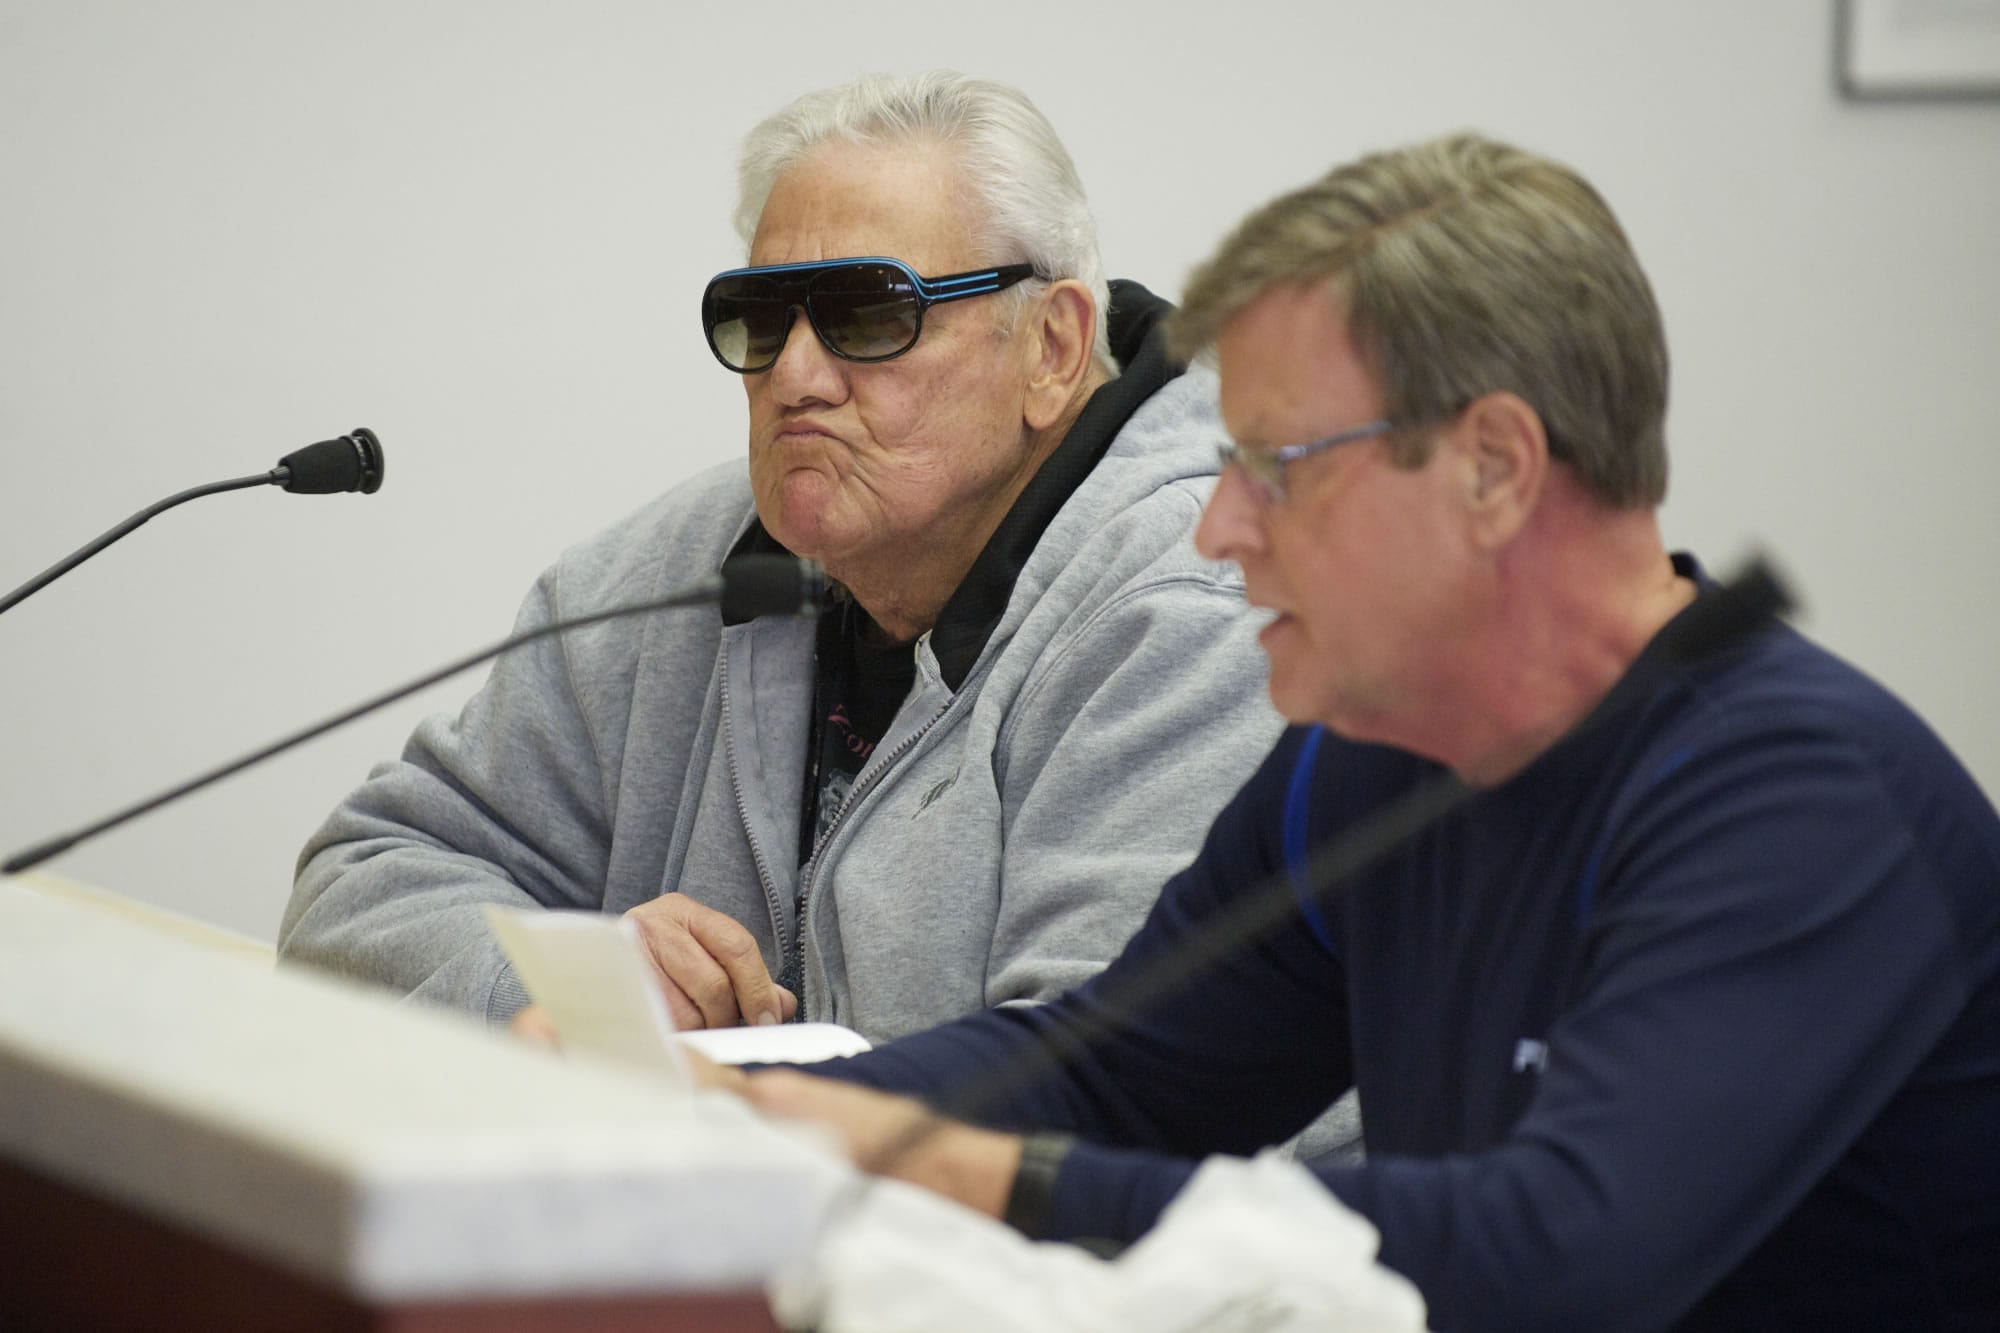 Jack Davis, left, and Jim Kinney speak at Tuesday's meeting of the Board of Clark County Commissioners.